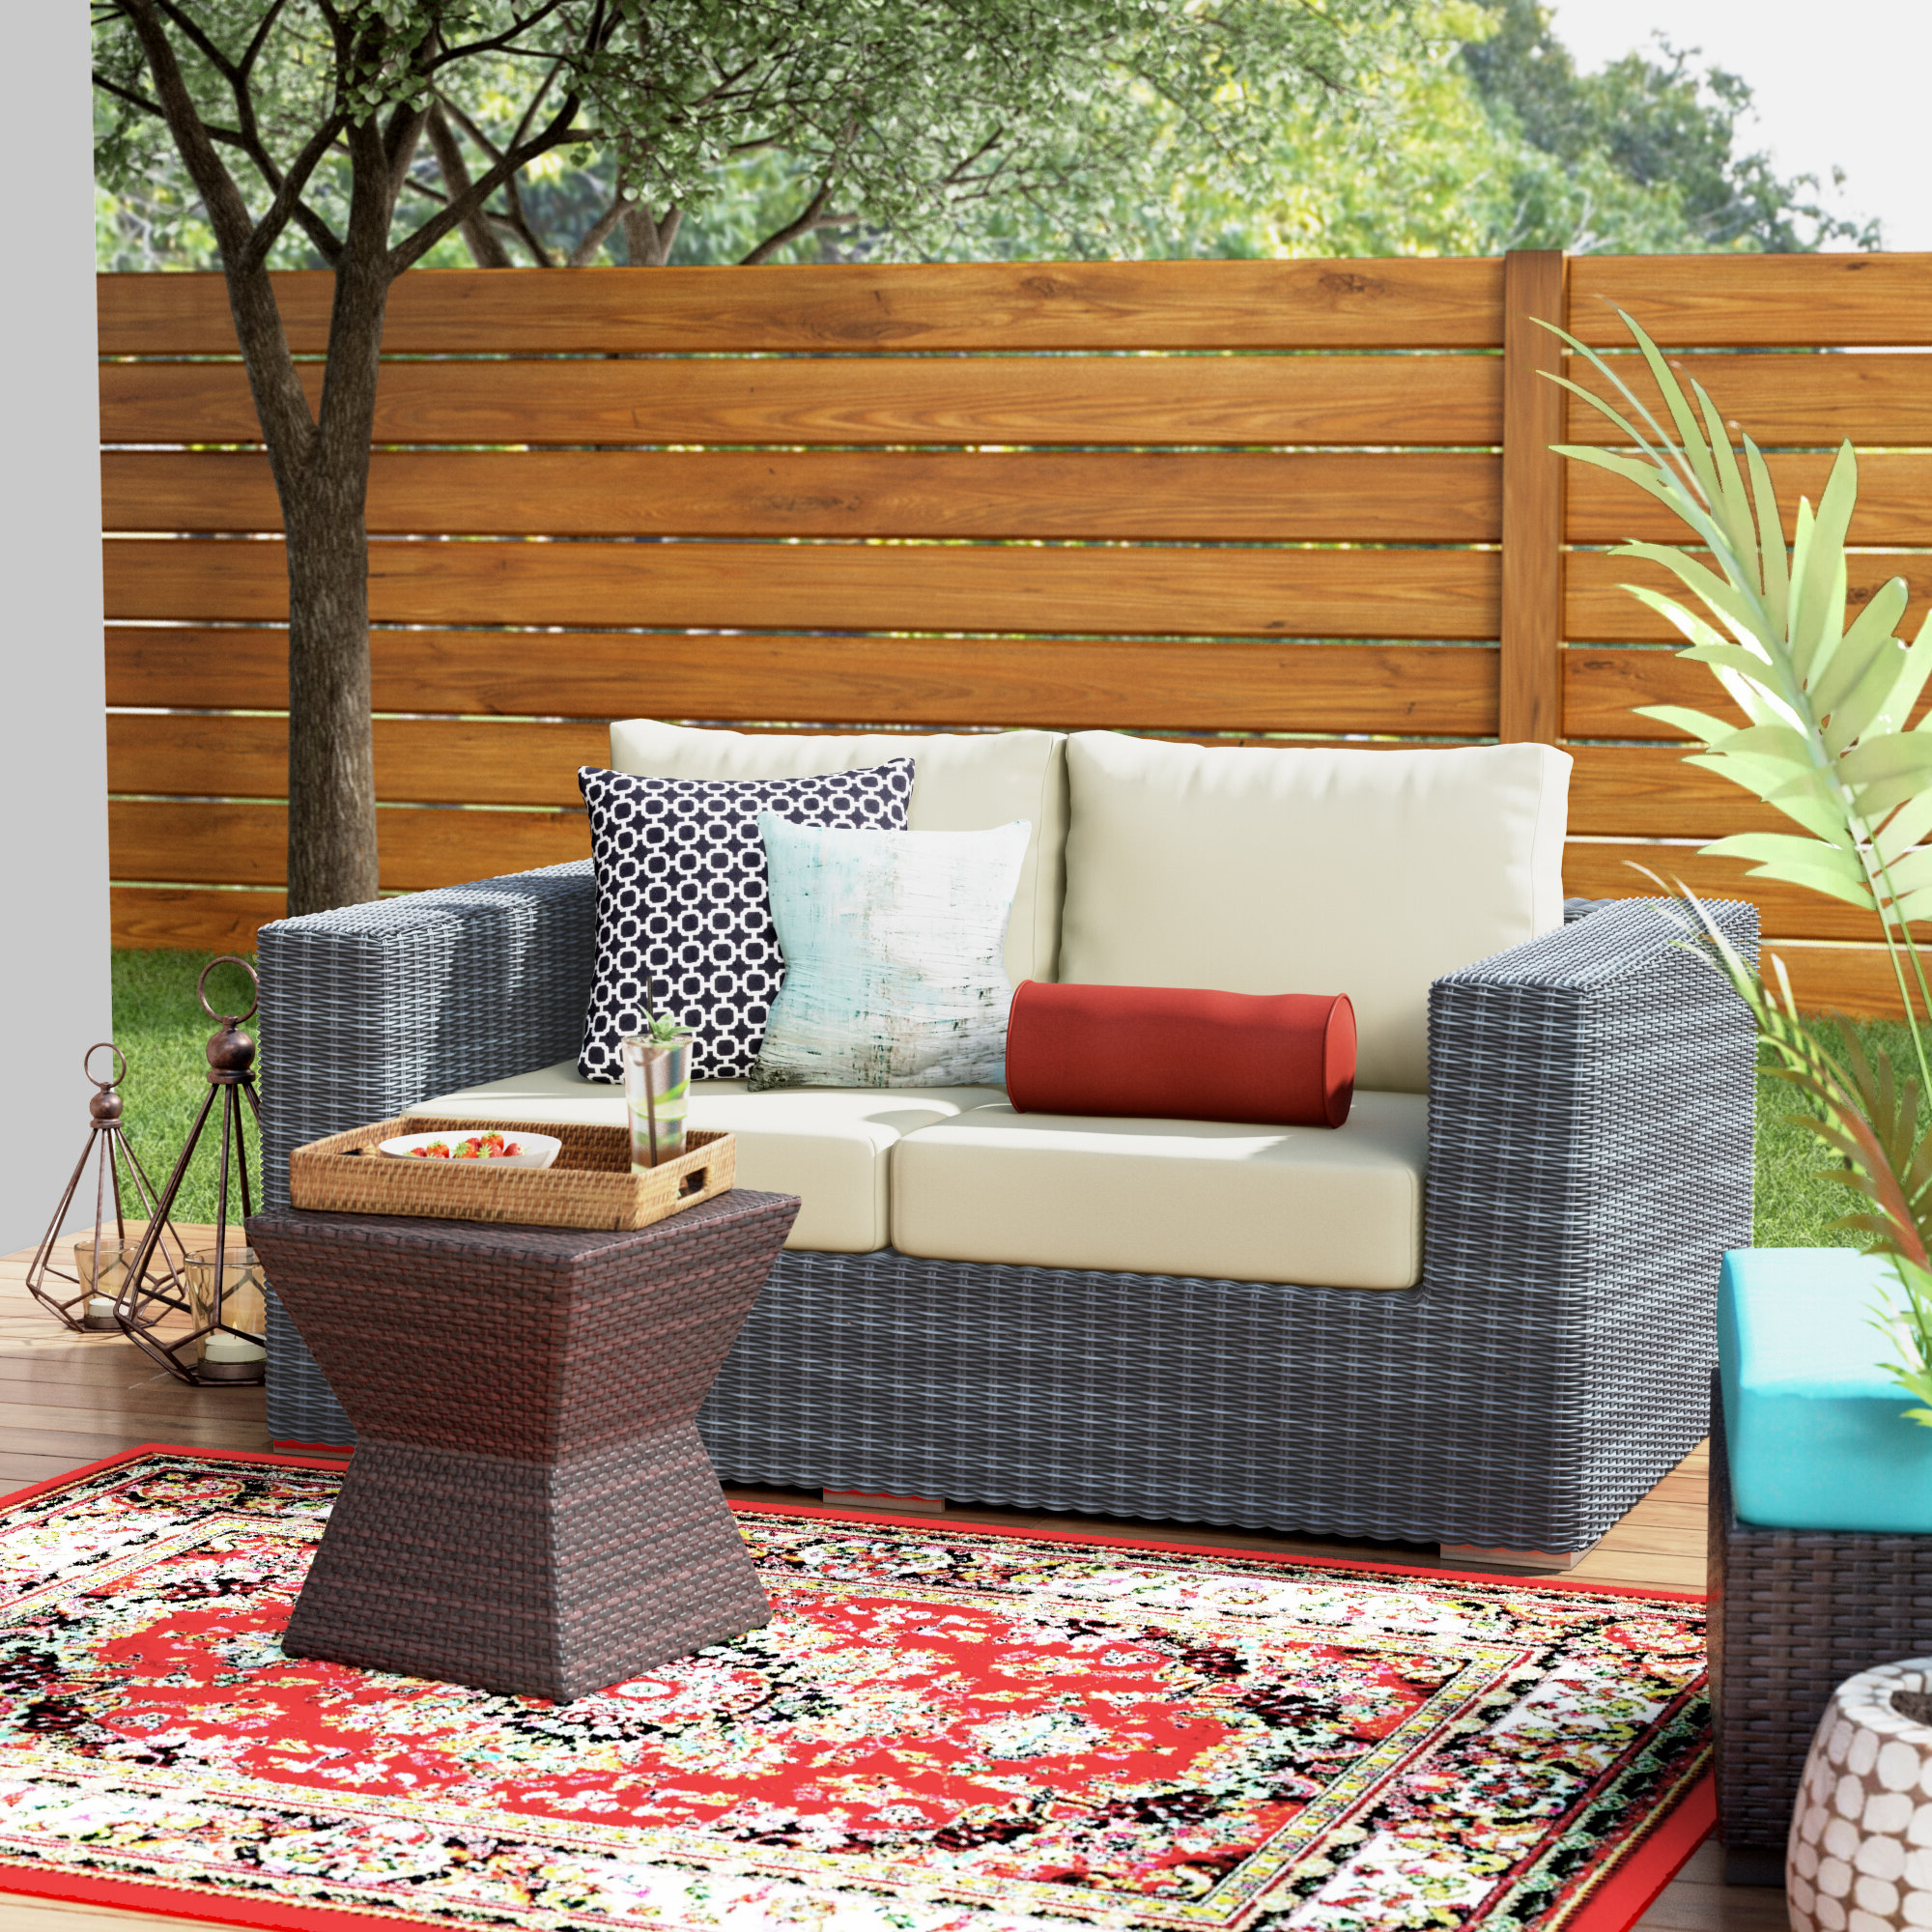 2019 Keiran Loveseat With Cushions Throughout Keiran Daybeds With Cushions (View 1 of 20)